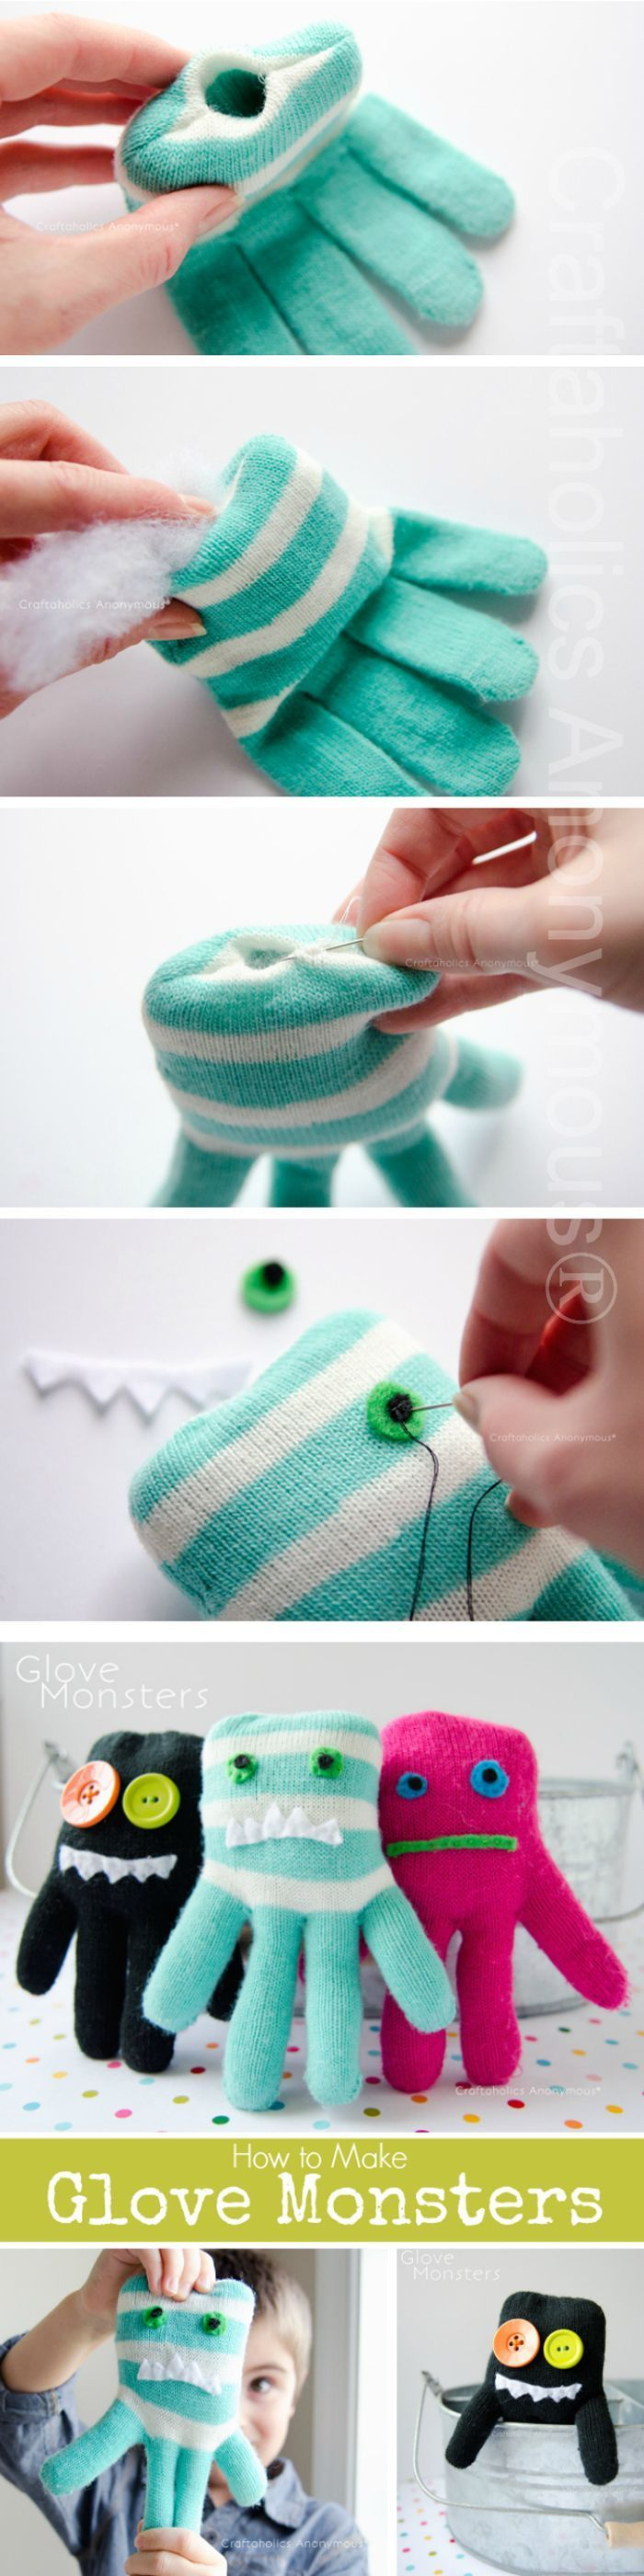 Glove Monsters - looks easy enough for even someone with no sewing skills